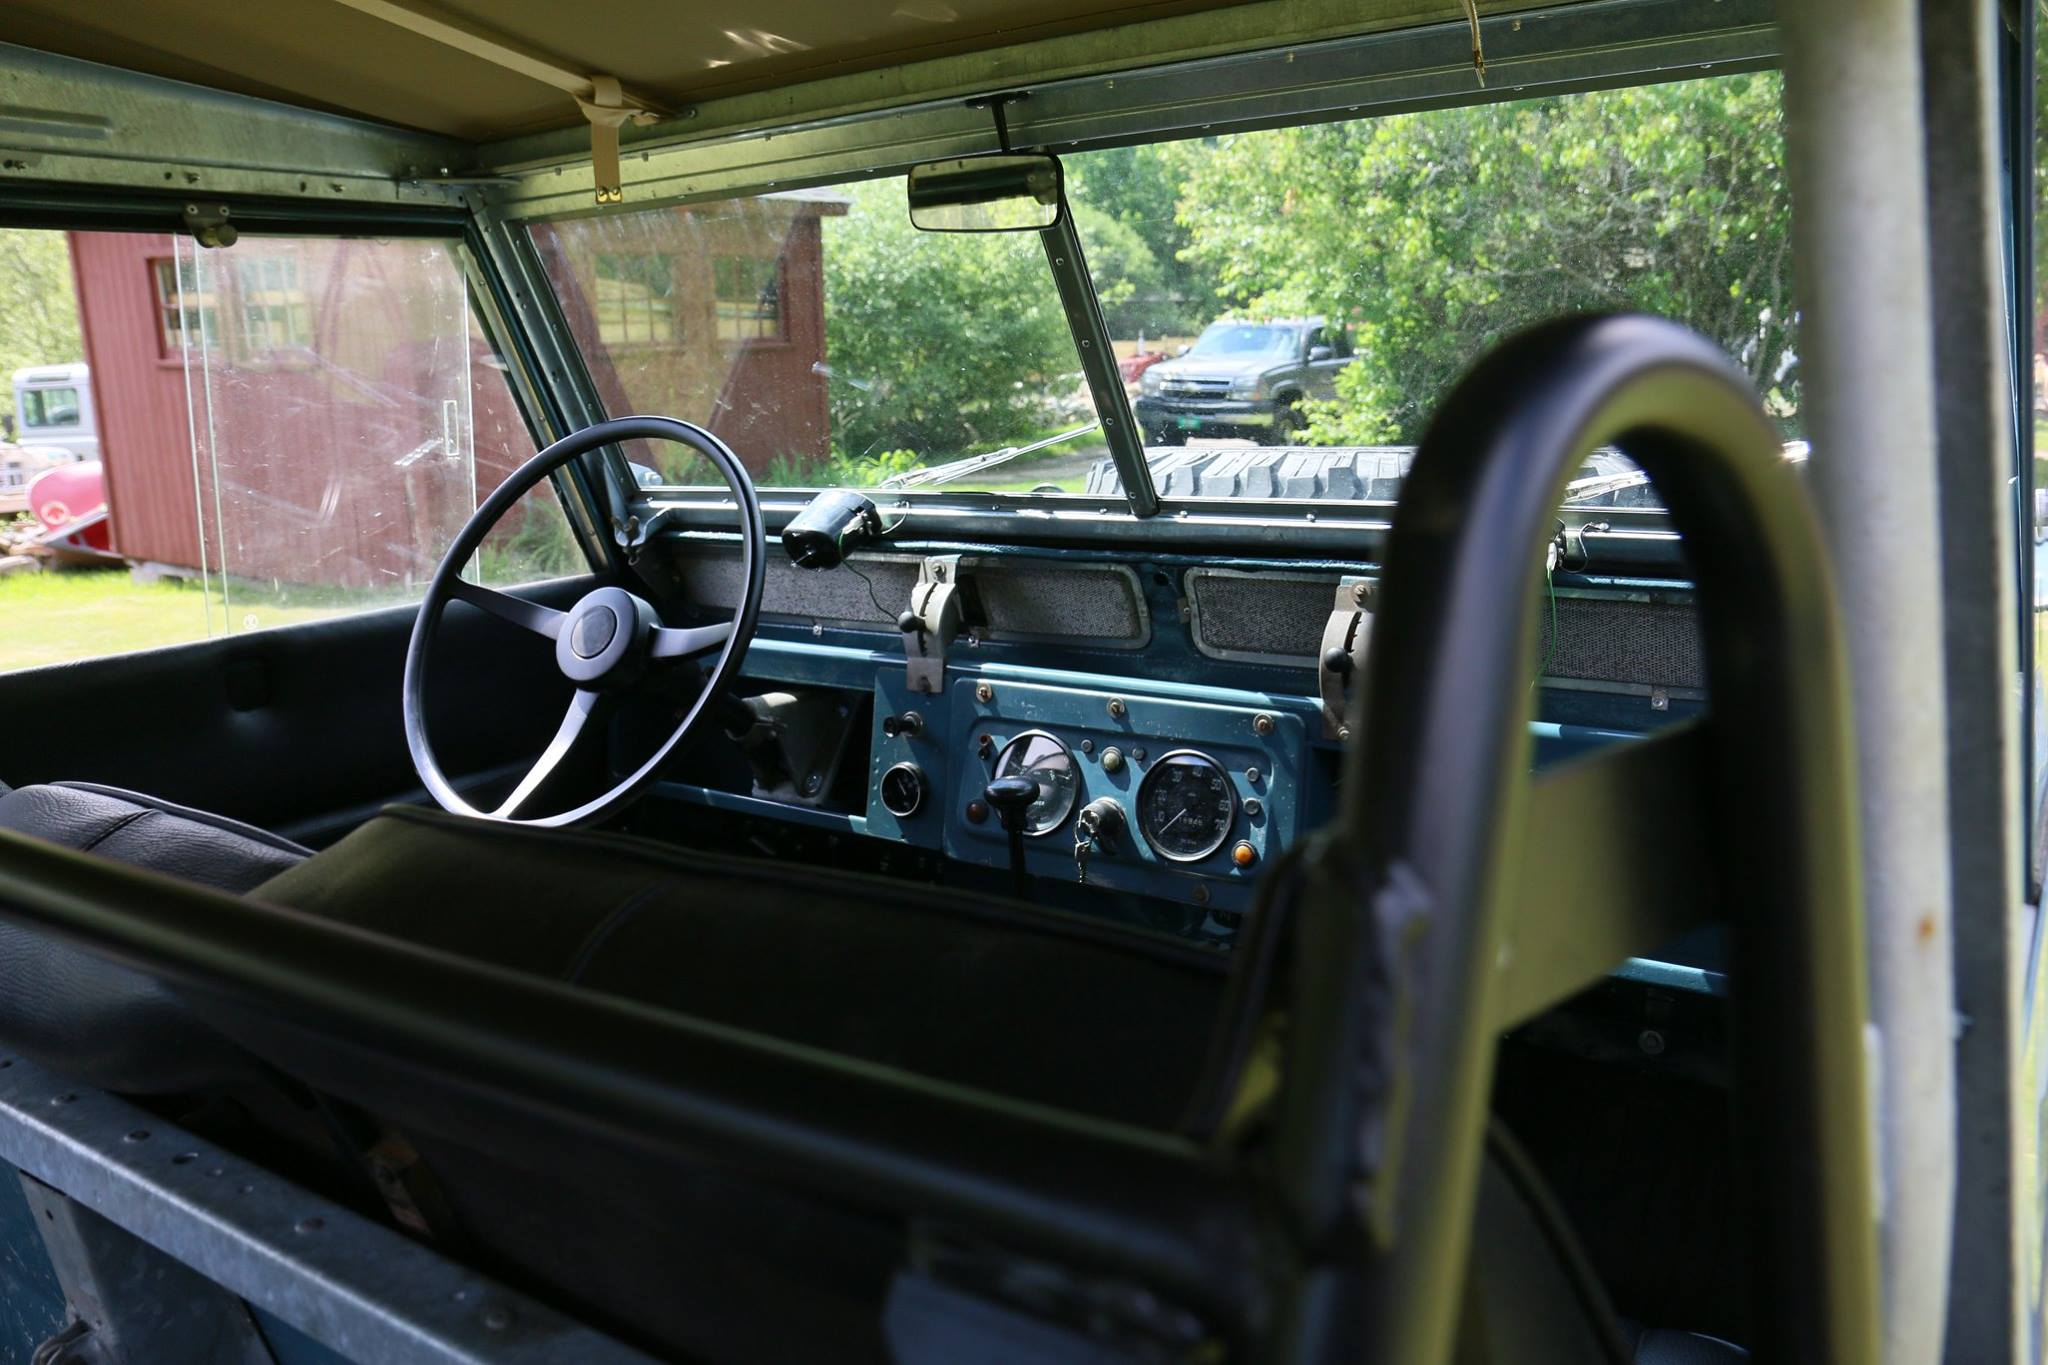 1962 Land Rover Series IIa dashboard